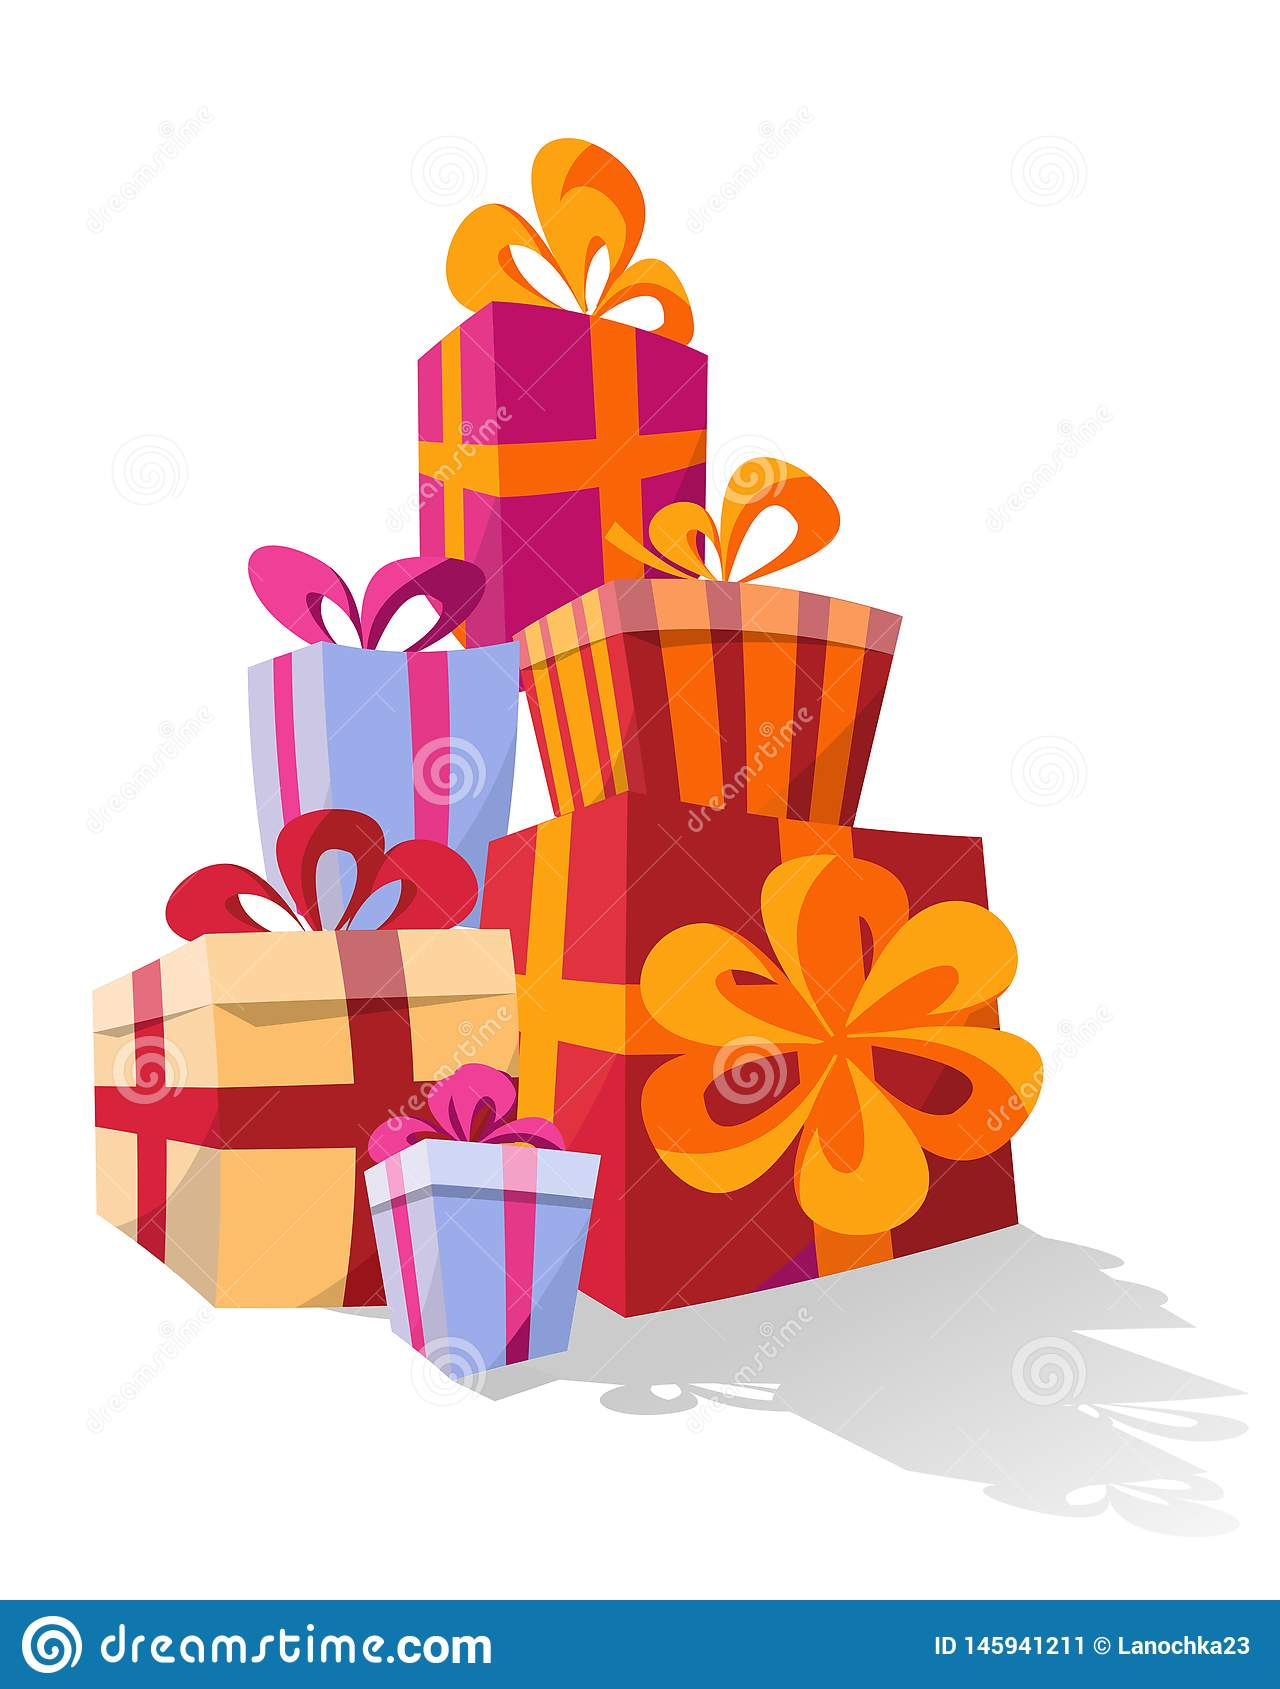 Set of piles of colorful curved gift boxes. Mountain gifts. Cute Present box with Bows. Vector Illustration.Surprise